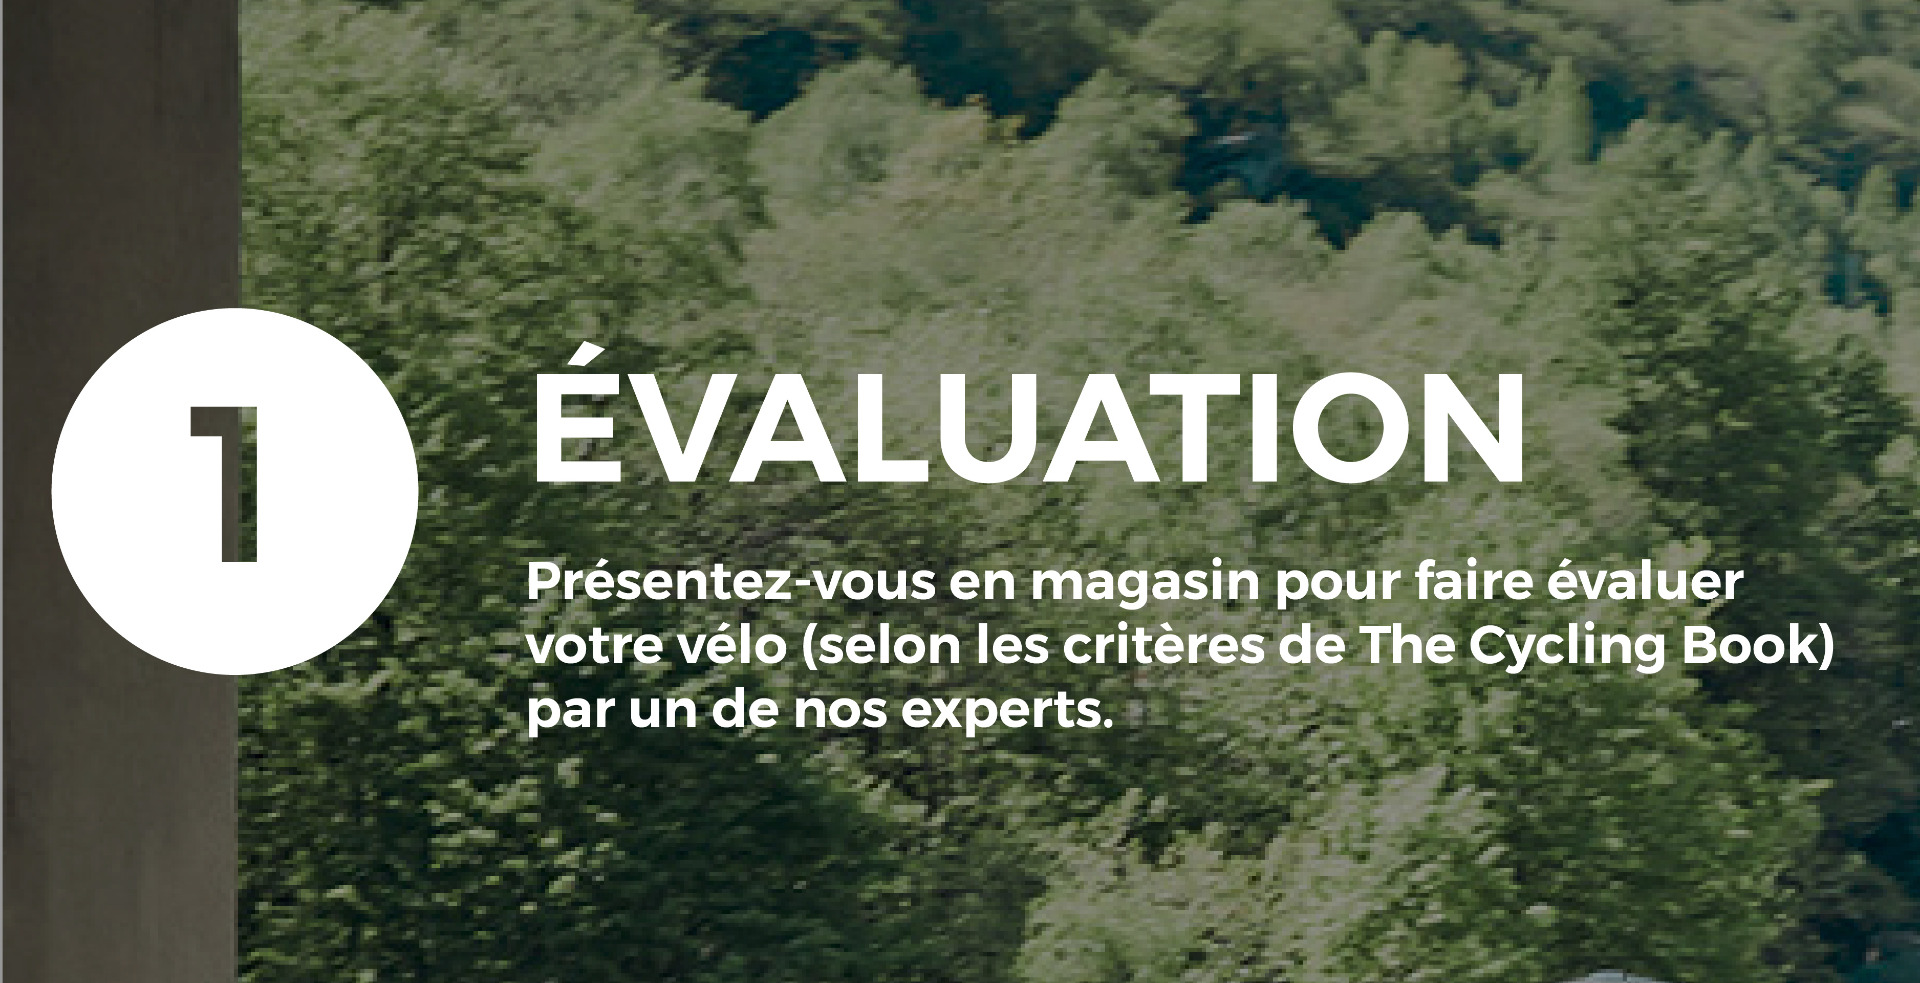 CYCLING BOOK ÉVALUATION